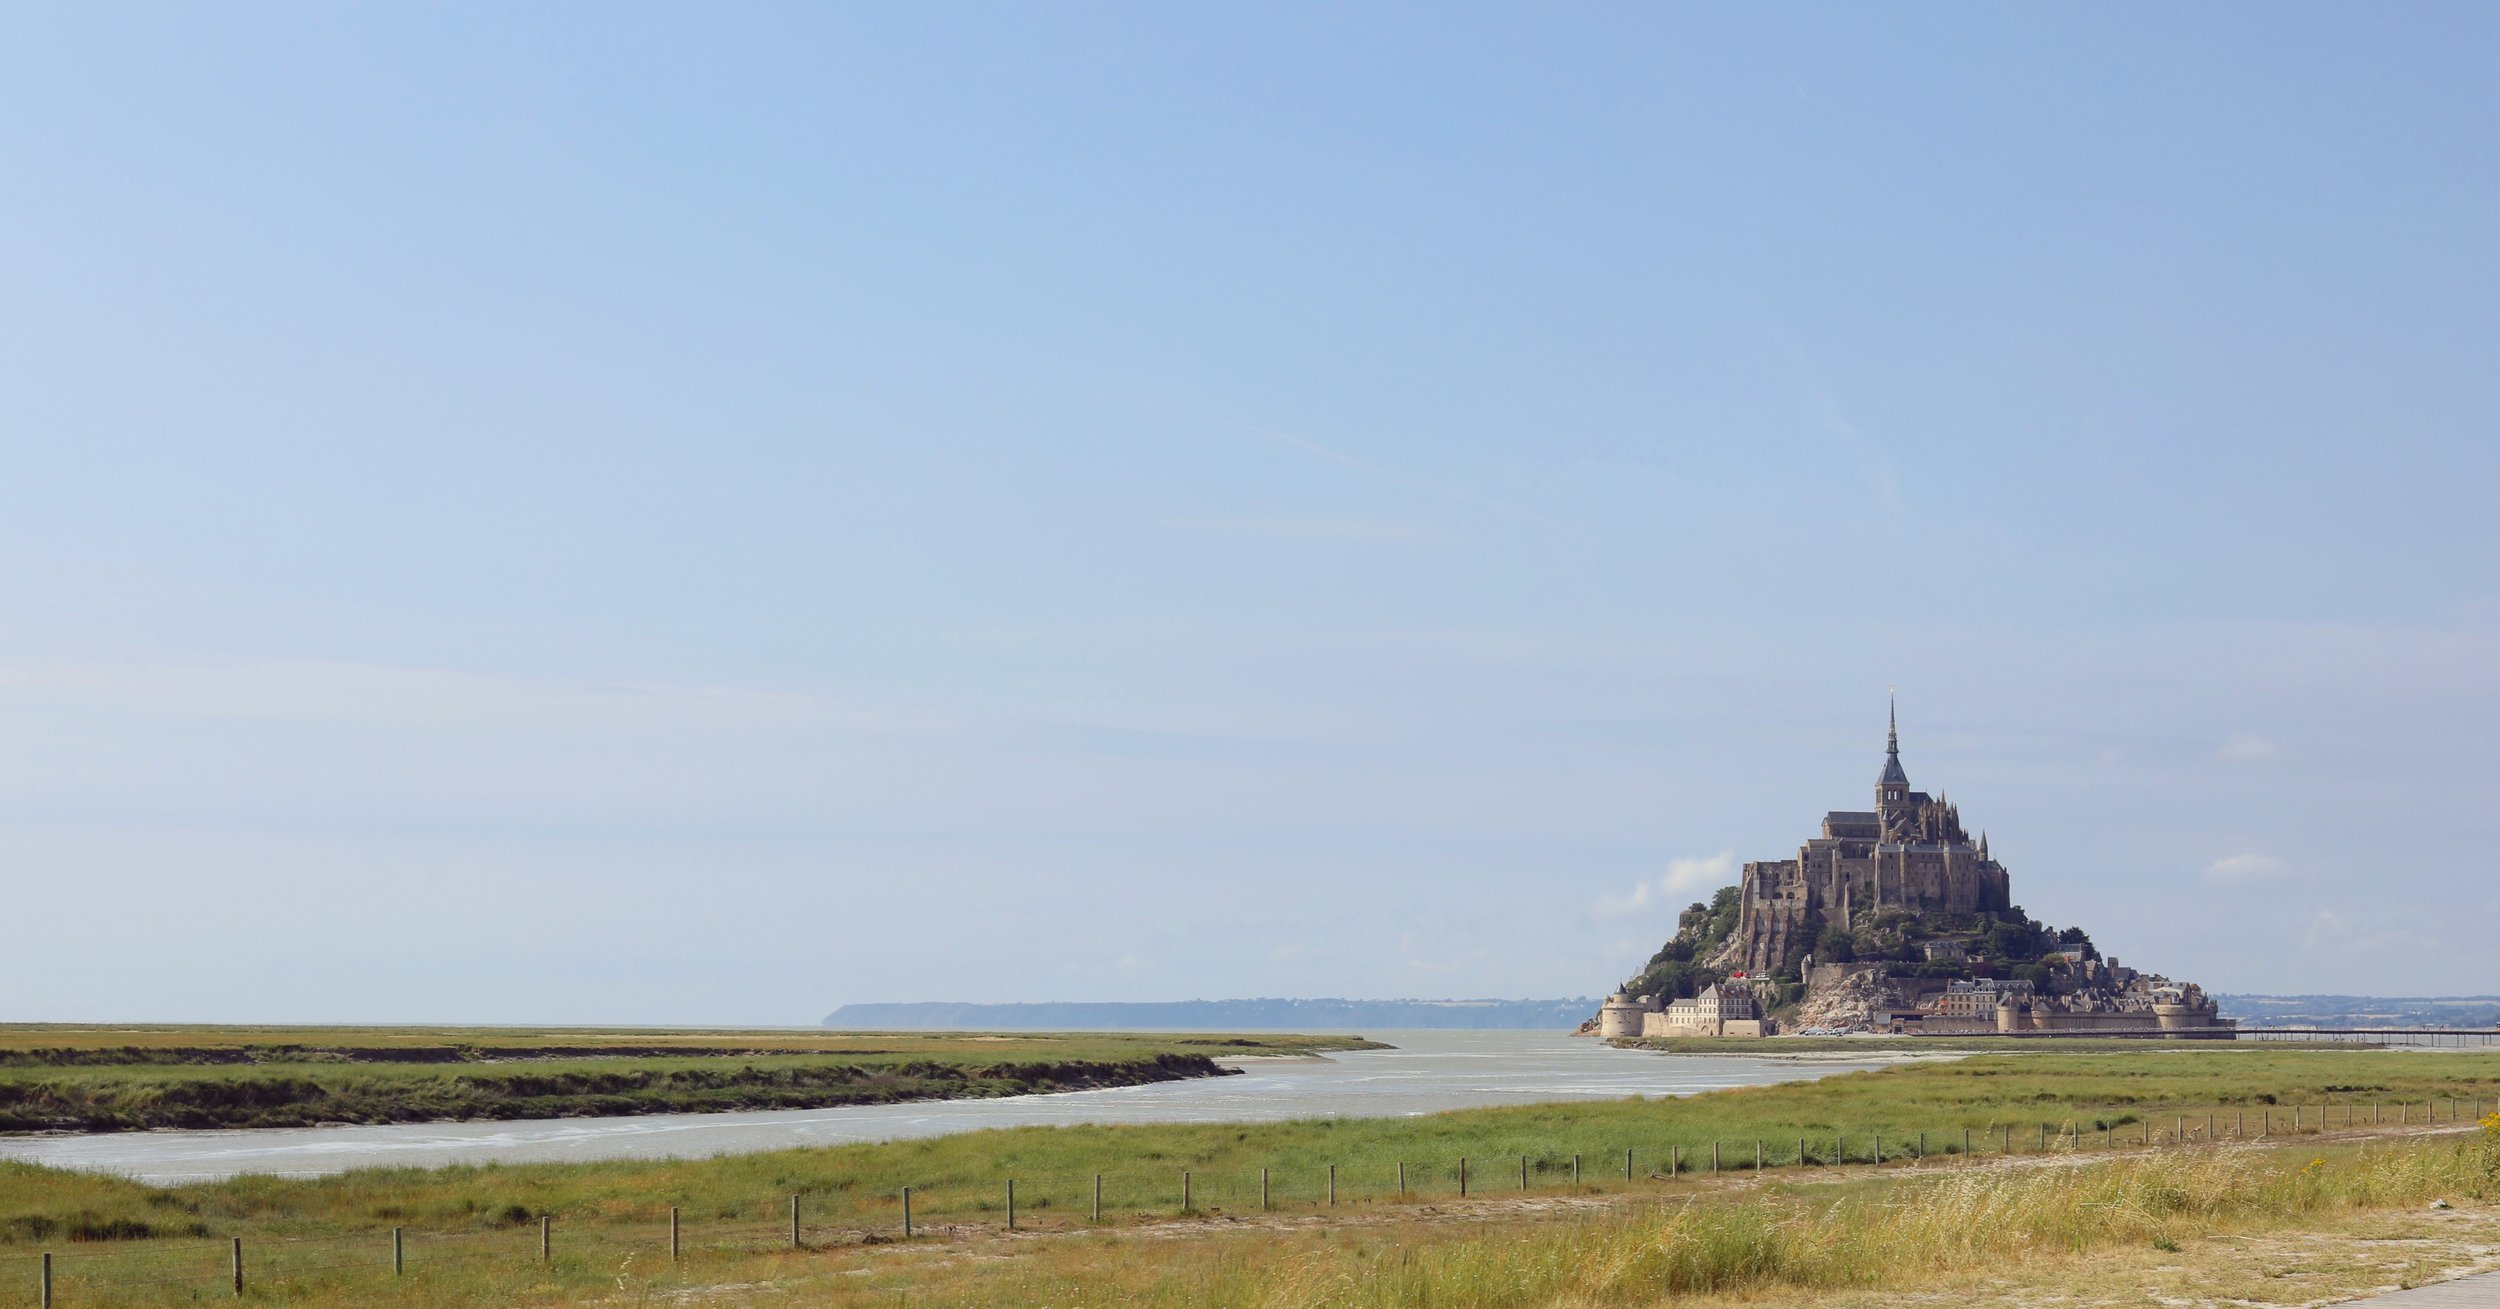 Le Mont-Saint-Michel, Normandy, France  Canon 5d Mark IV